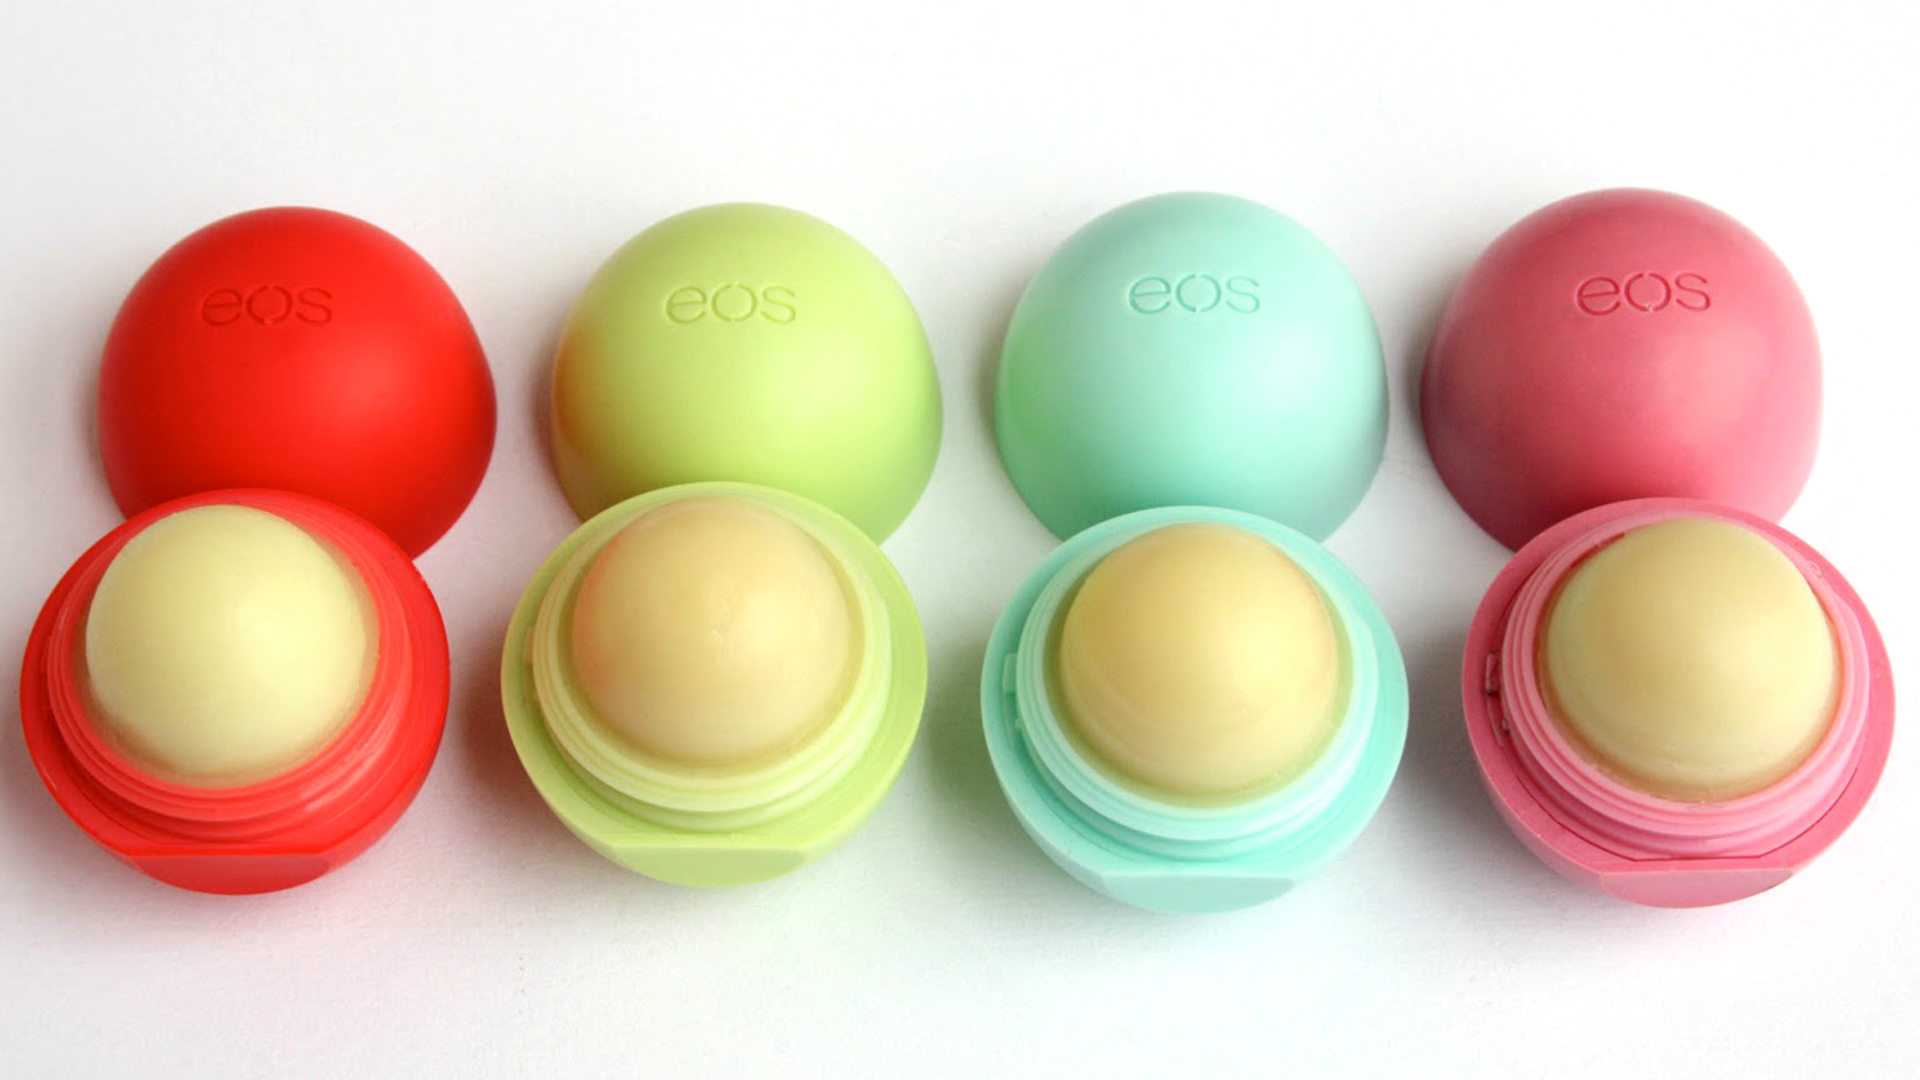 Eos Lip Balm Caused Blisters Rash Lawsuit Claims